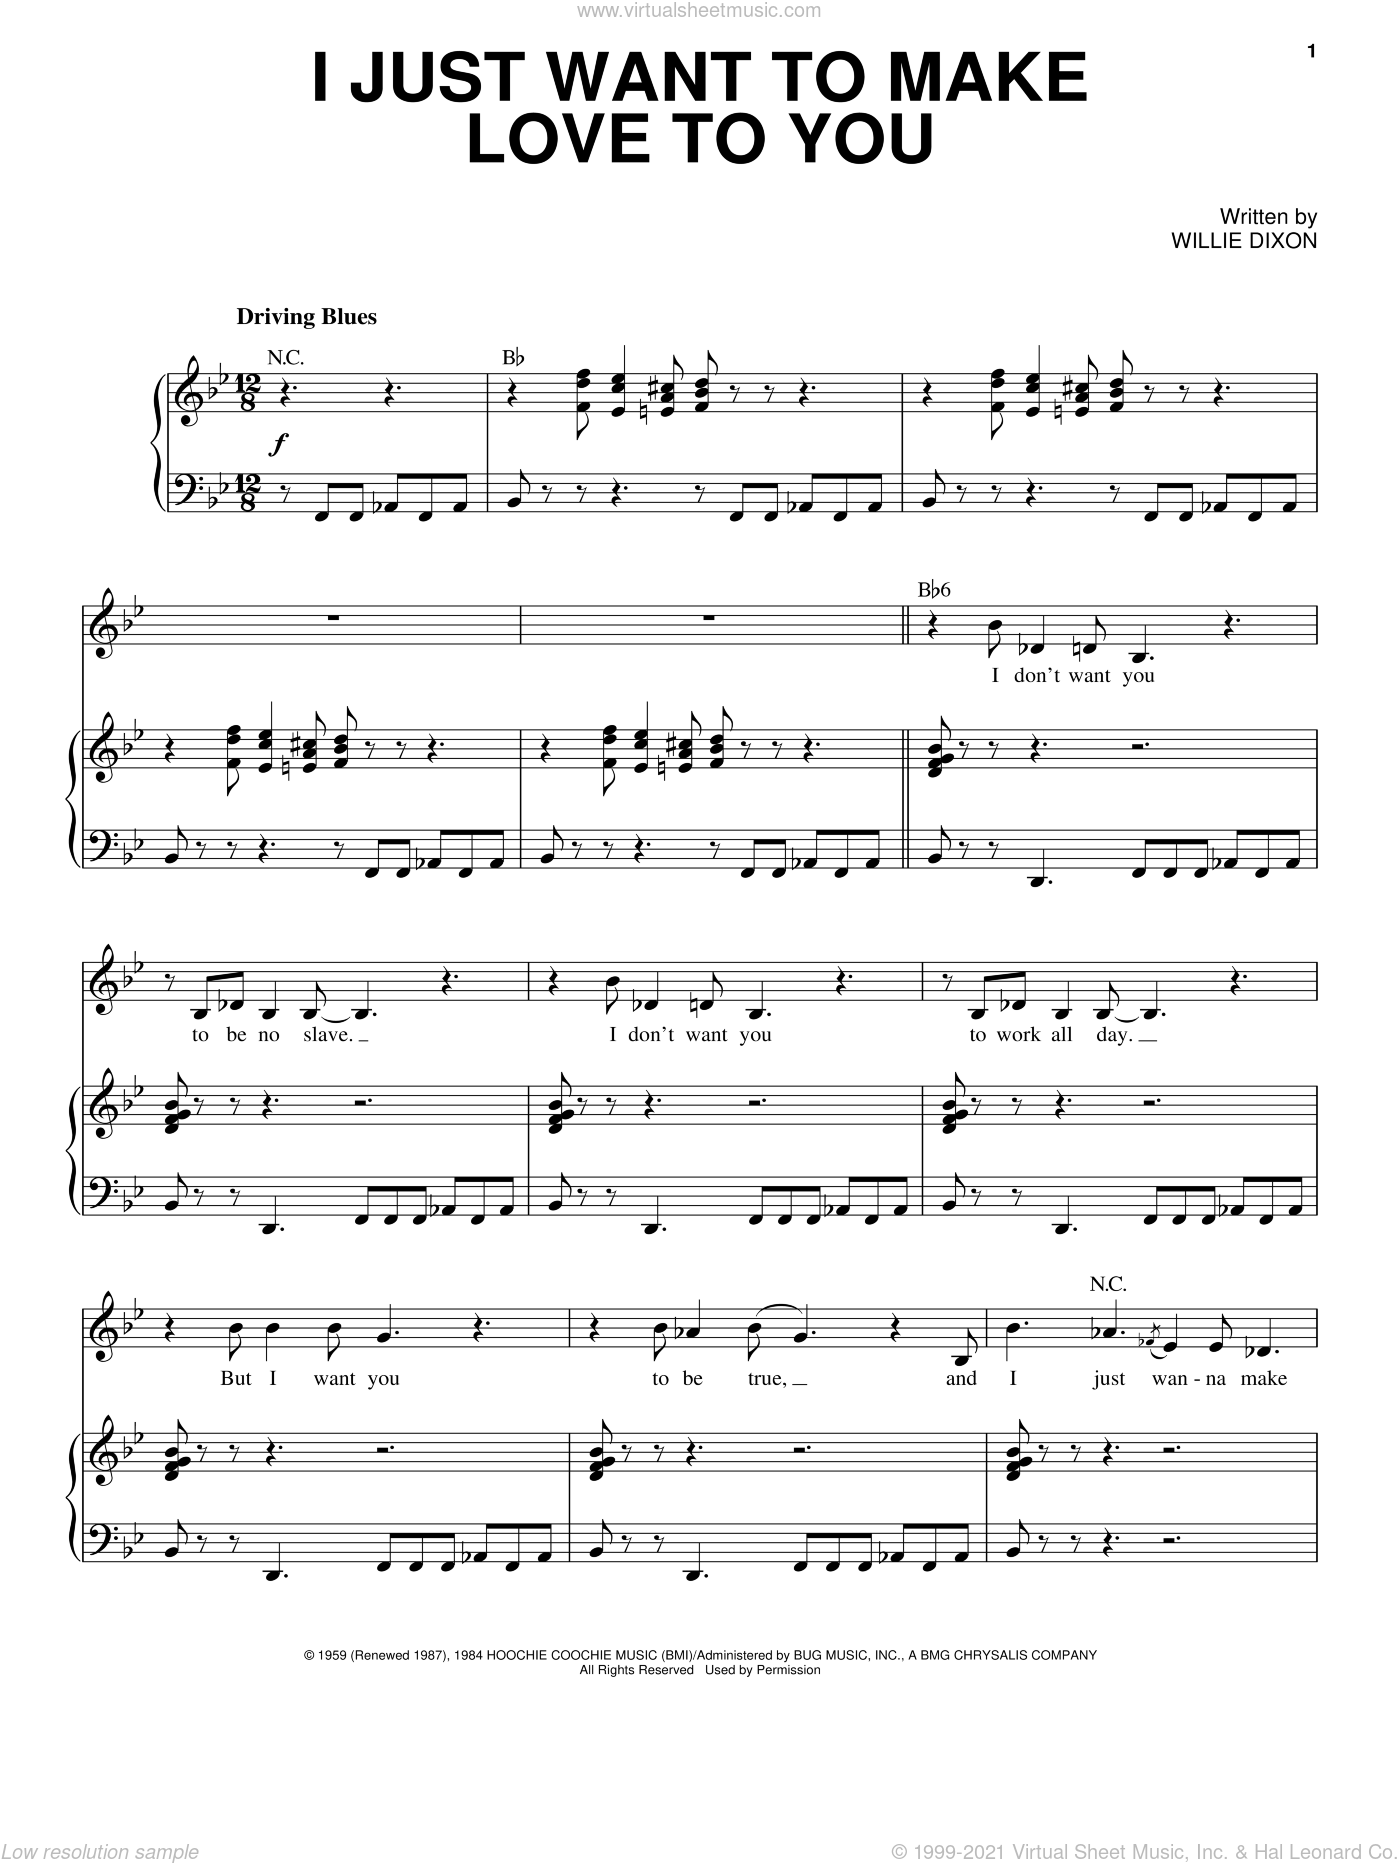 I Just Want To Make Love To You sheet music for voice and piano by Etta James, Foghat and Willie Dixon, intermediate skill level